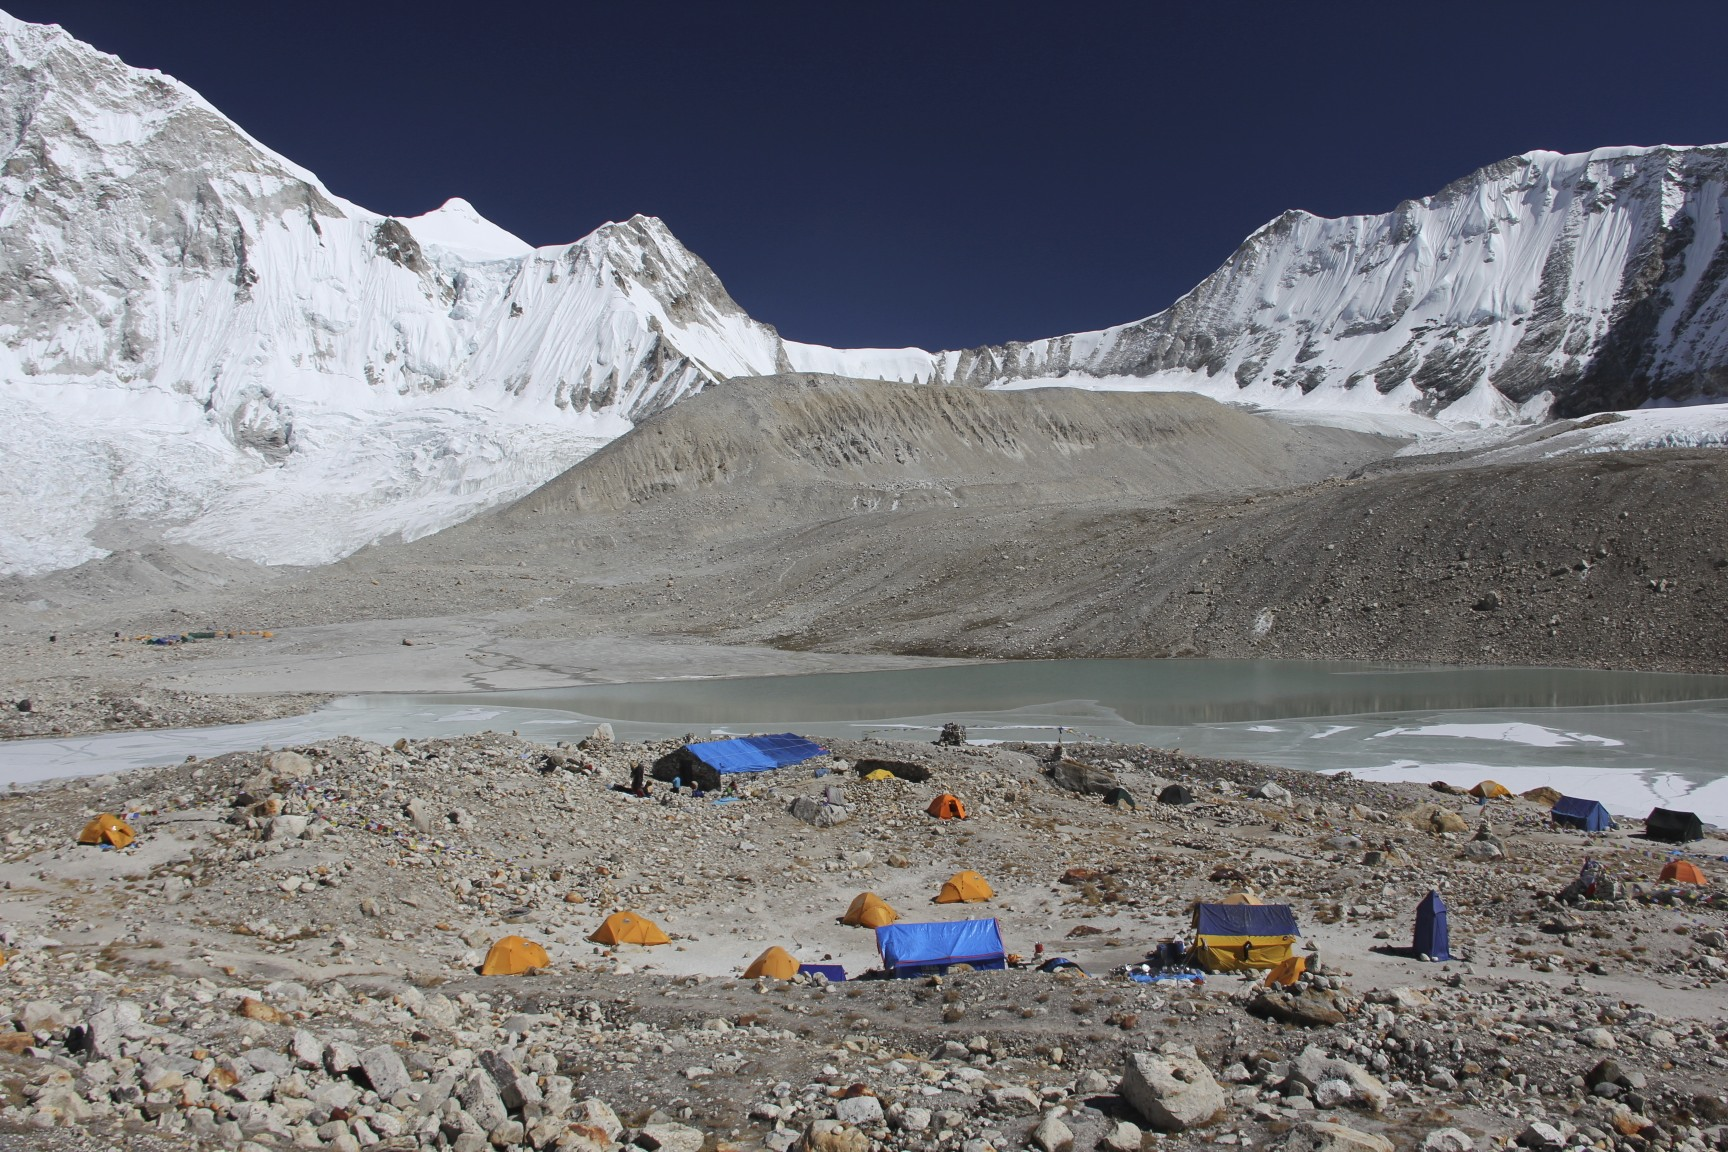 Baruntse basecamp at around 5,400m. The West Col is now far in the distance.